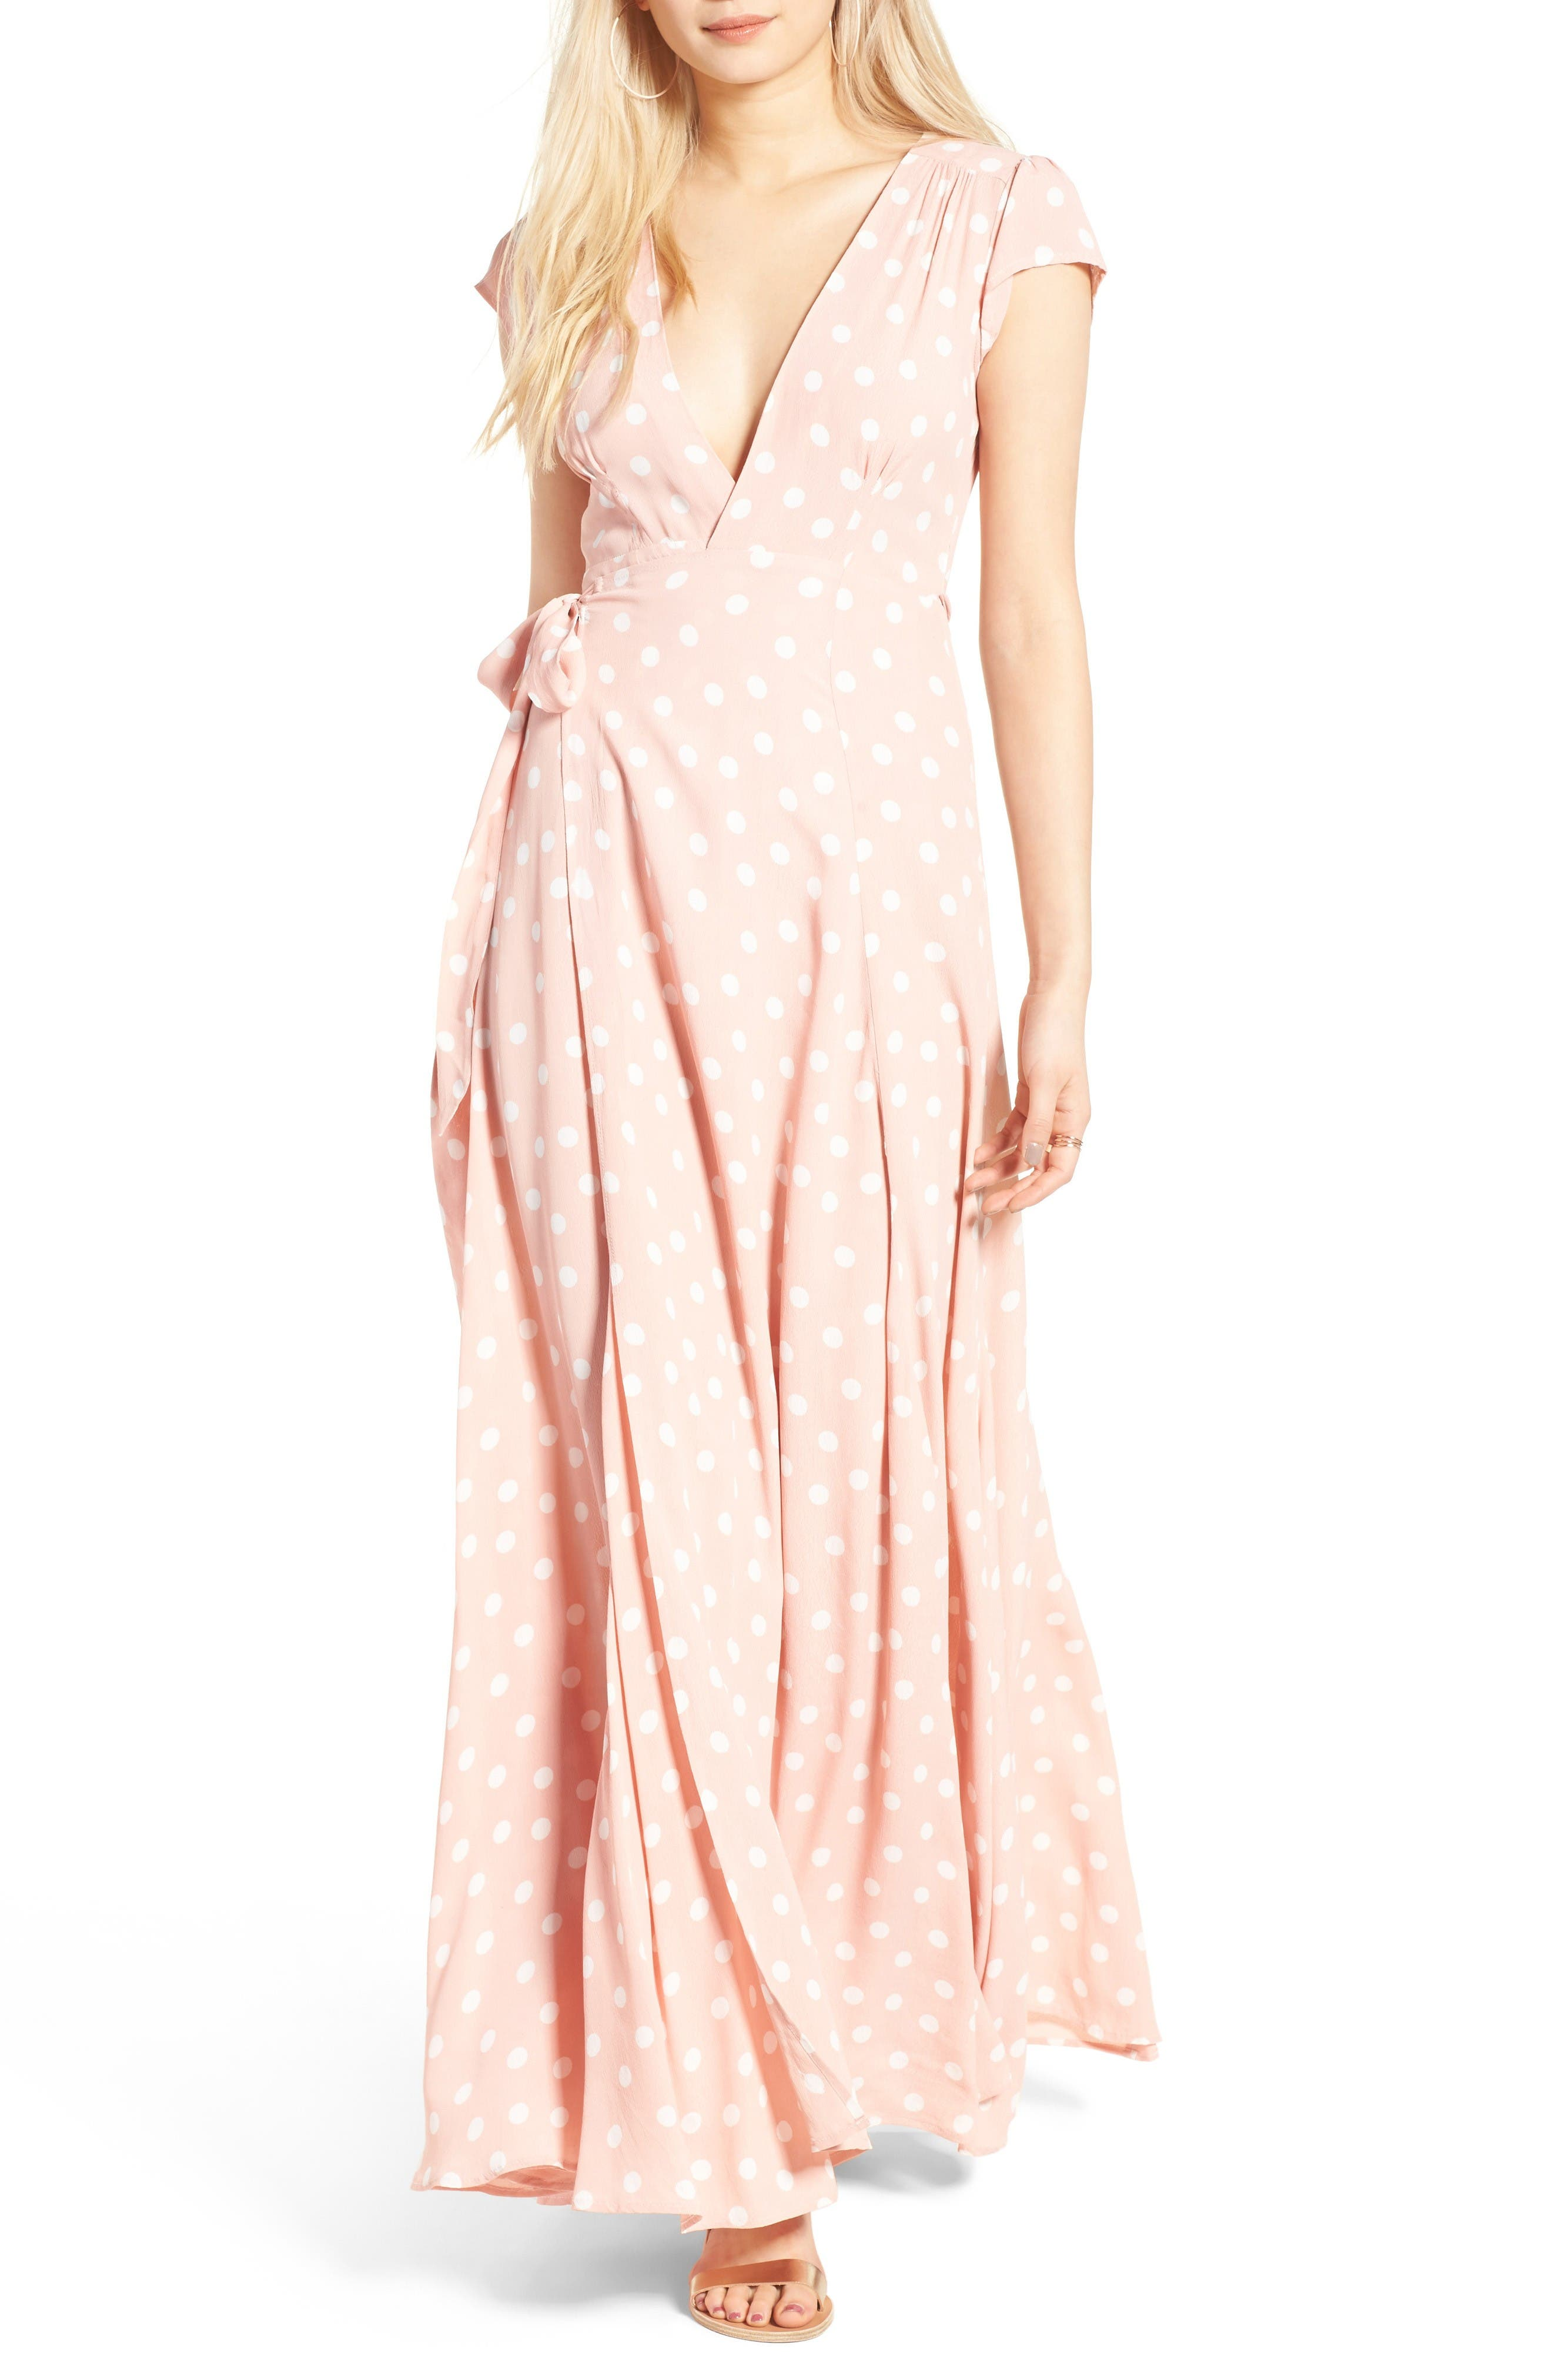 Alternate Image 1 Selected - Tularosa Sid Wrap Maxi Dress (Nordstrom Exclusive)